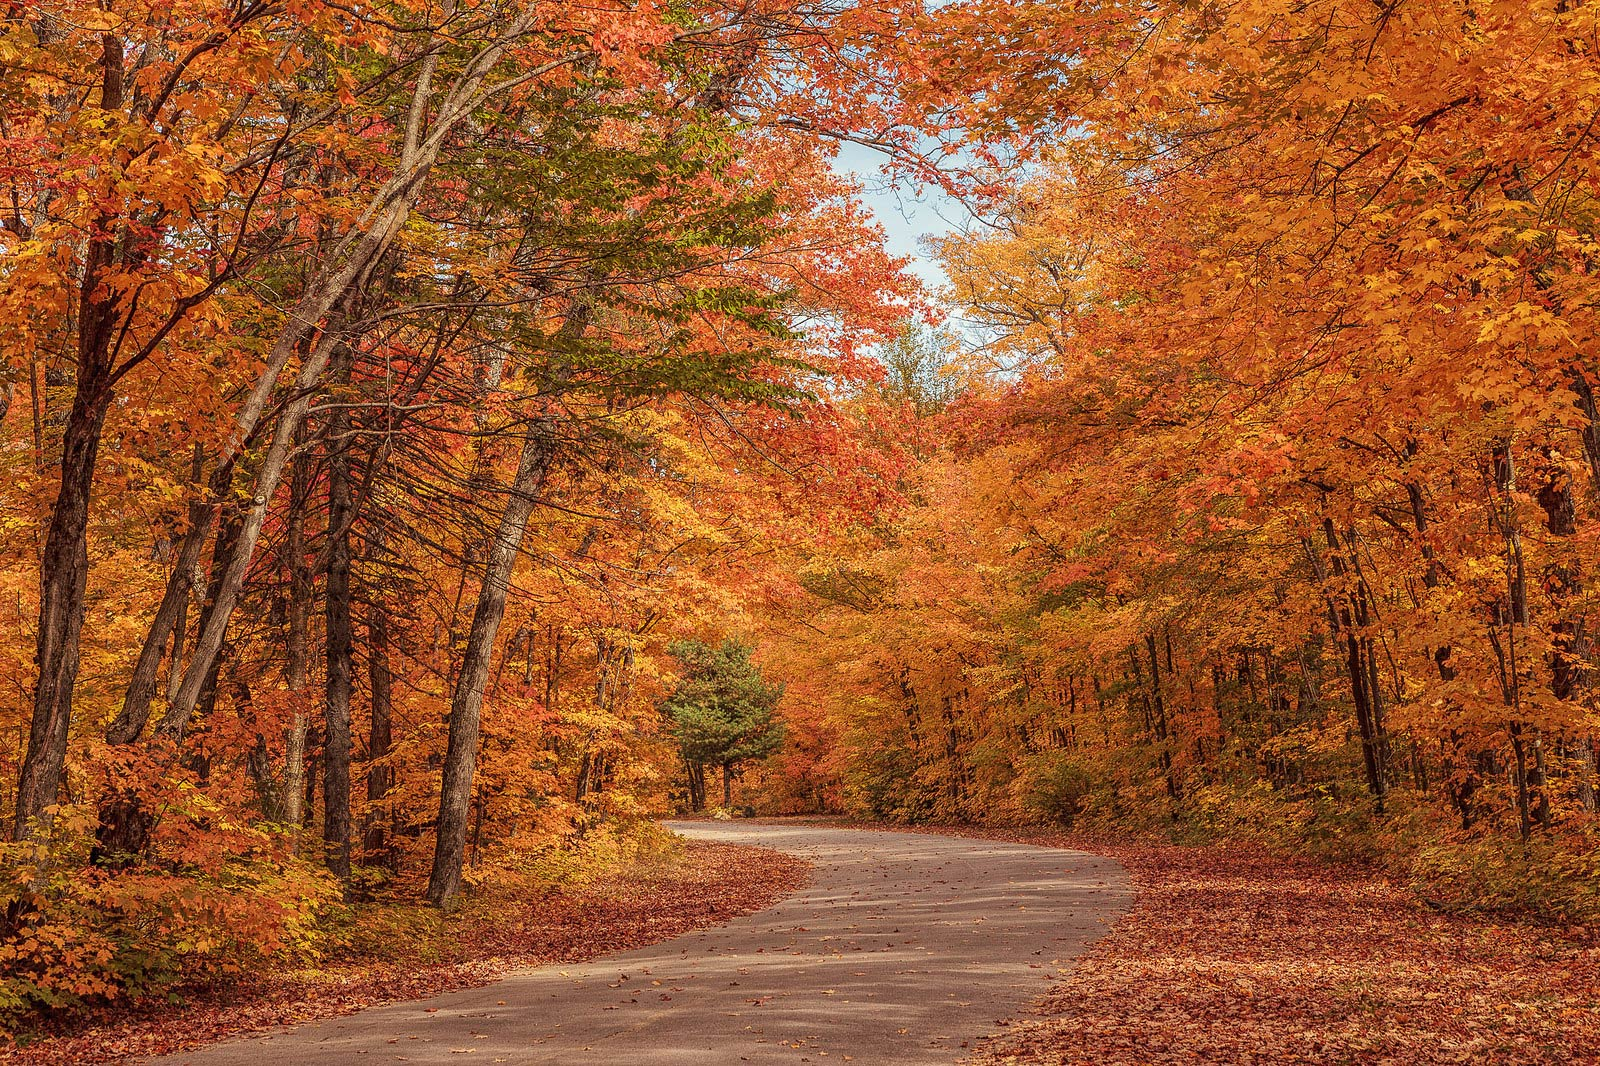 10 places in Canada to see gorgeous fall foliage - Cruiseable